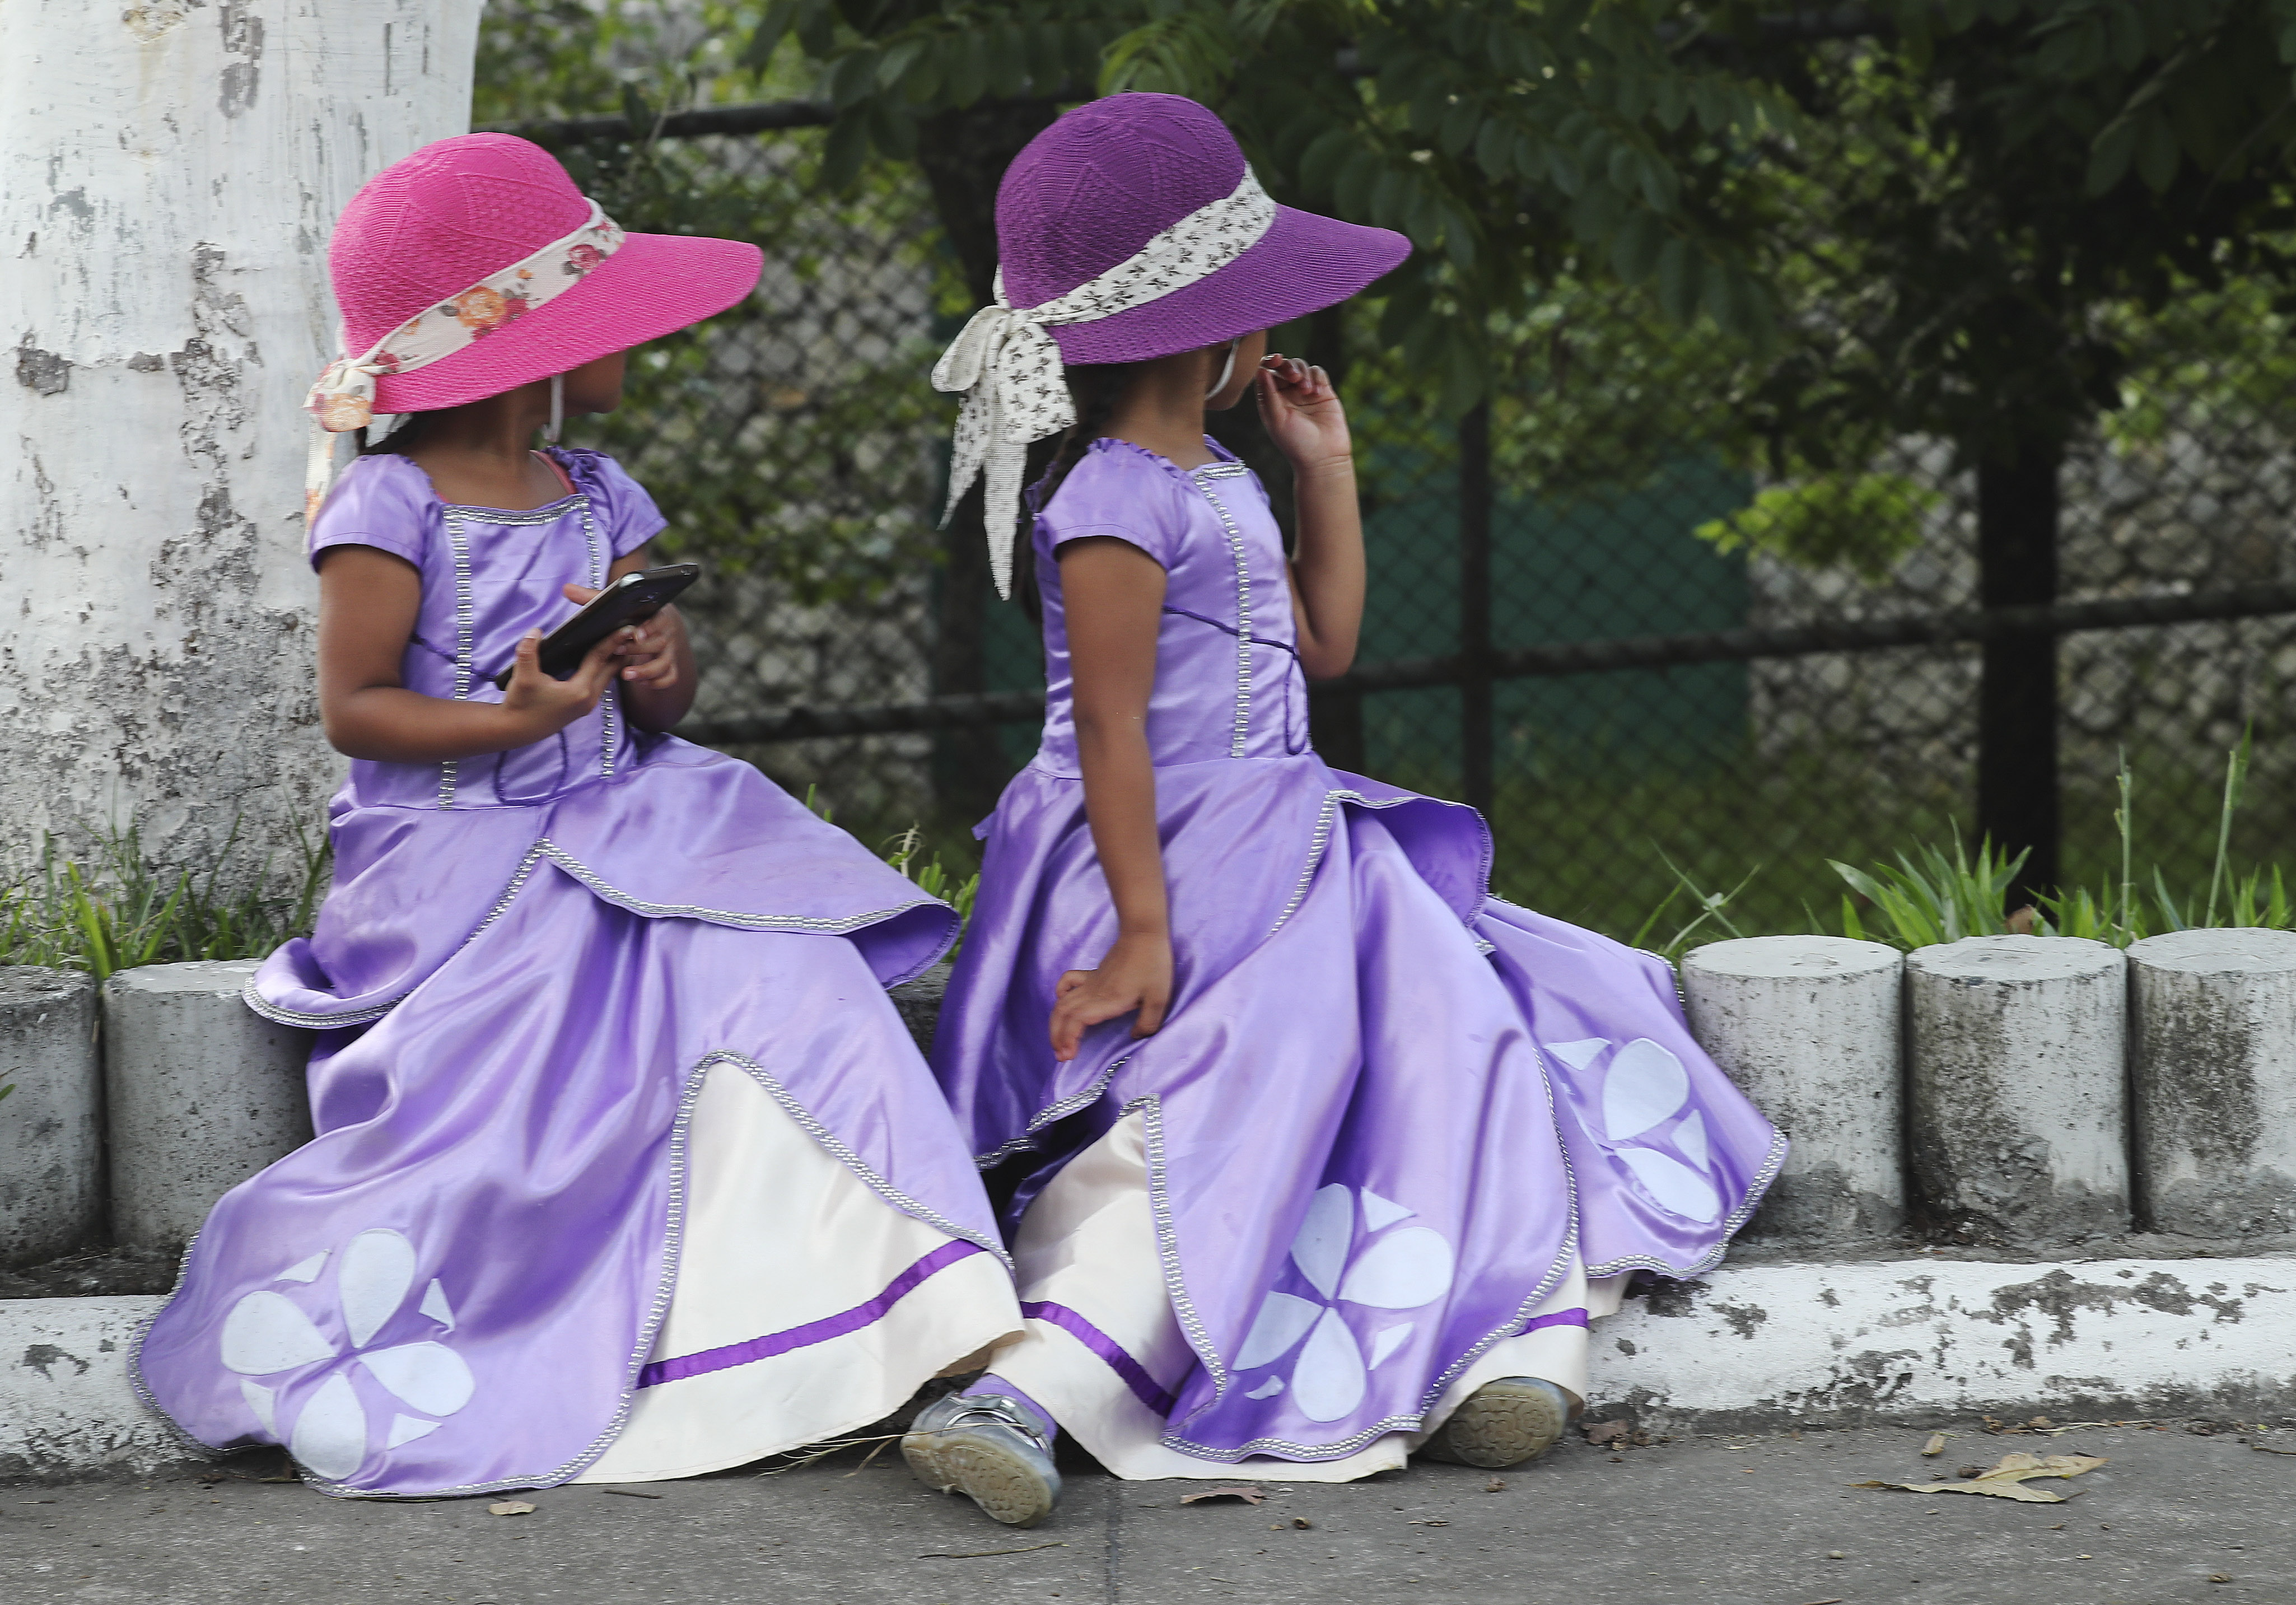 Tow young girls wait for the devotional at Estadio Cementos Progreso stadium in Guatemala City on Aug. 24, 2019.